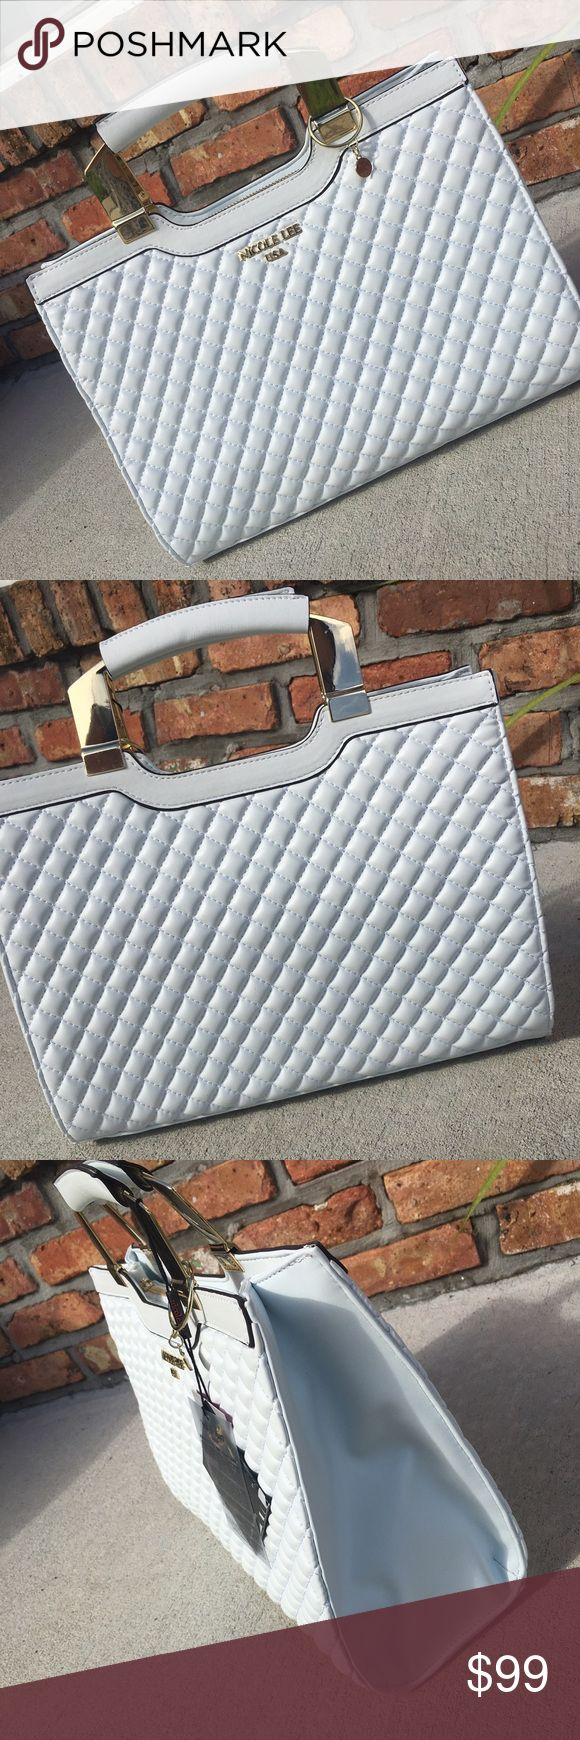 White Nicole Lee handbag New .. White quilted handbag, with gold details .. Comes with attachable & adjustable shoulder strap ..no trades ..no holds ..firm unless bundling Nicole Lee Bags Totes